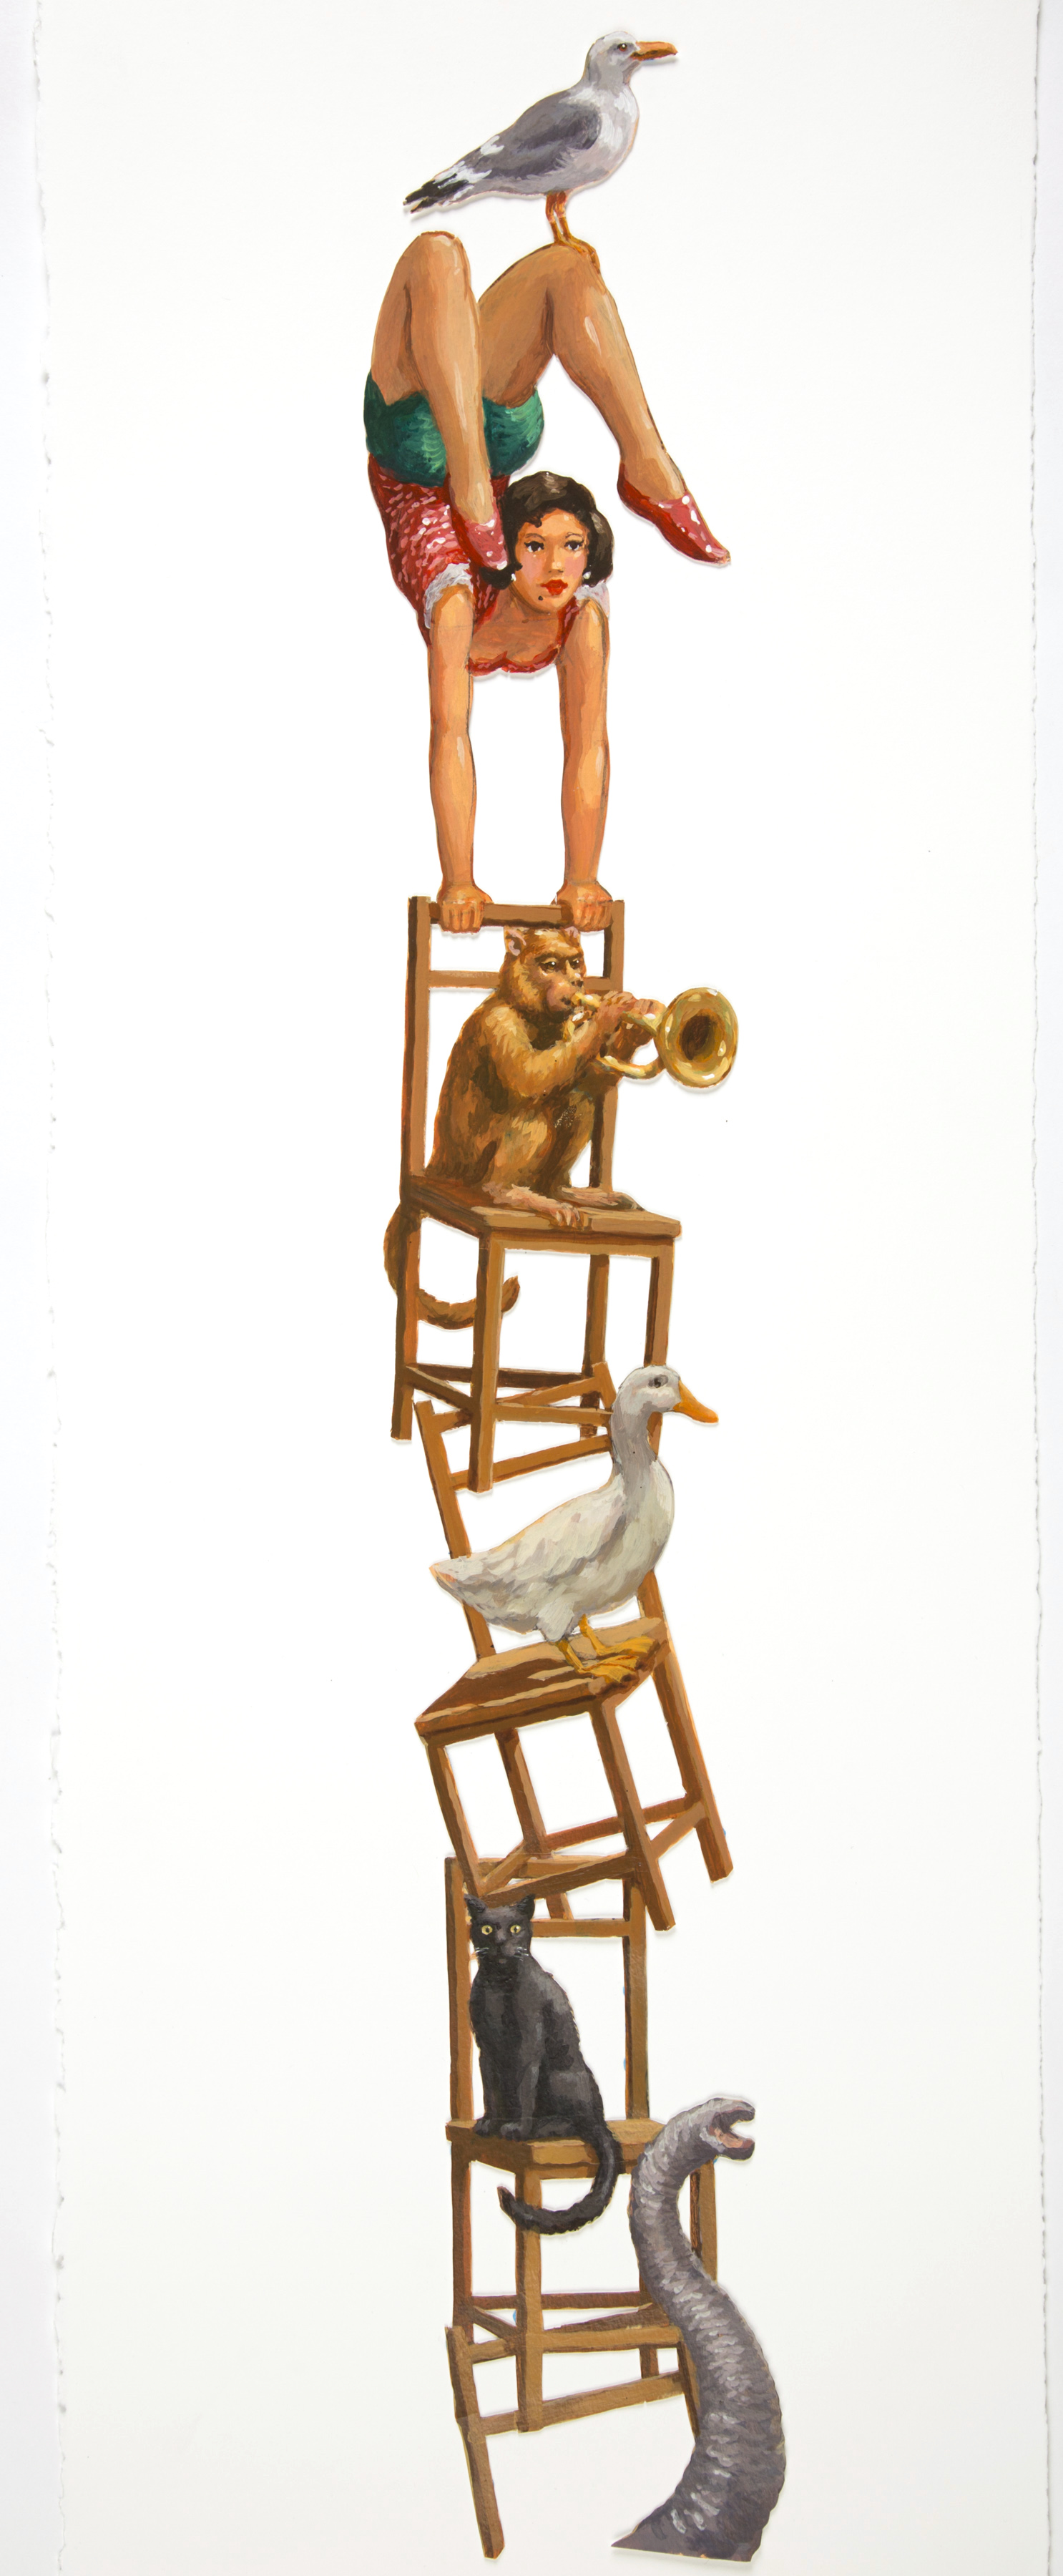 High quality reproduction of original design drawing of the Chair Balancing Act from the Spiegel Automata Commission. Print size is 29 x 76 cm including the white border. No animals were injured modelling for this image.